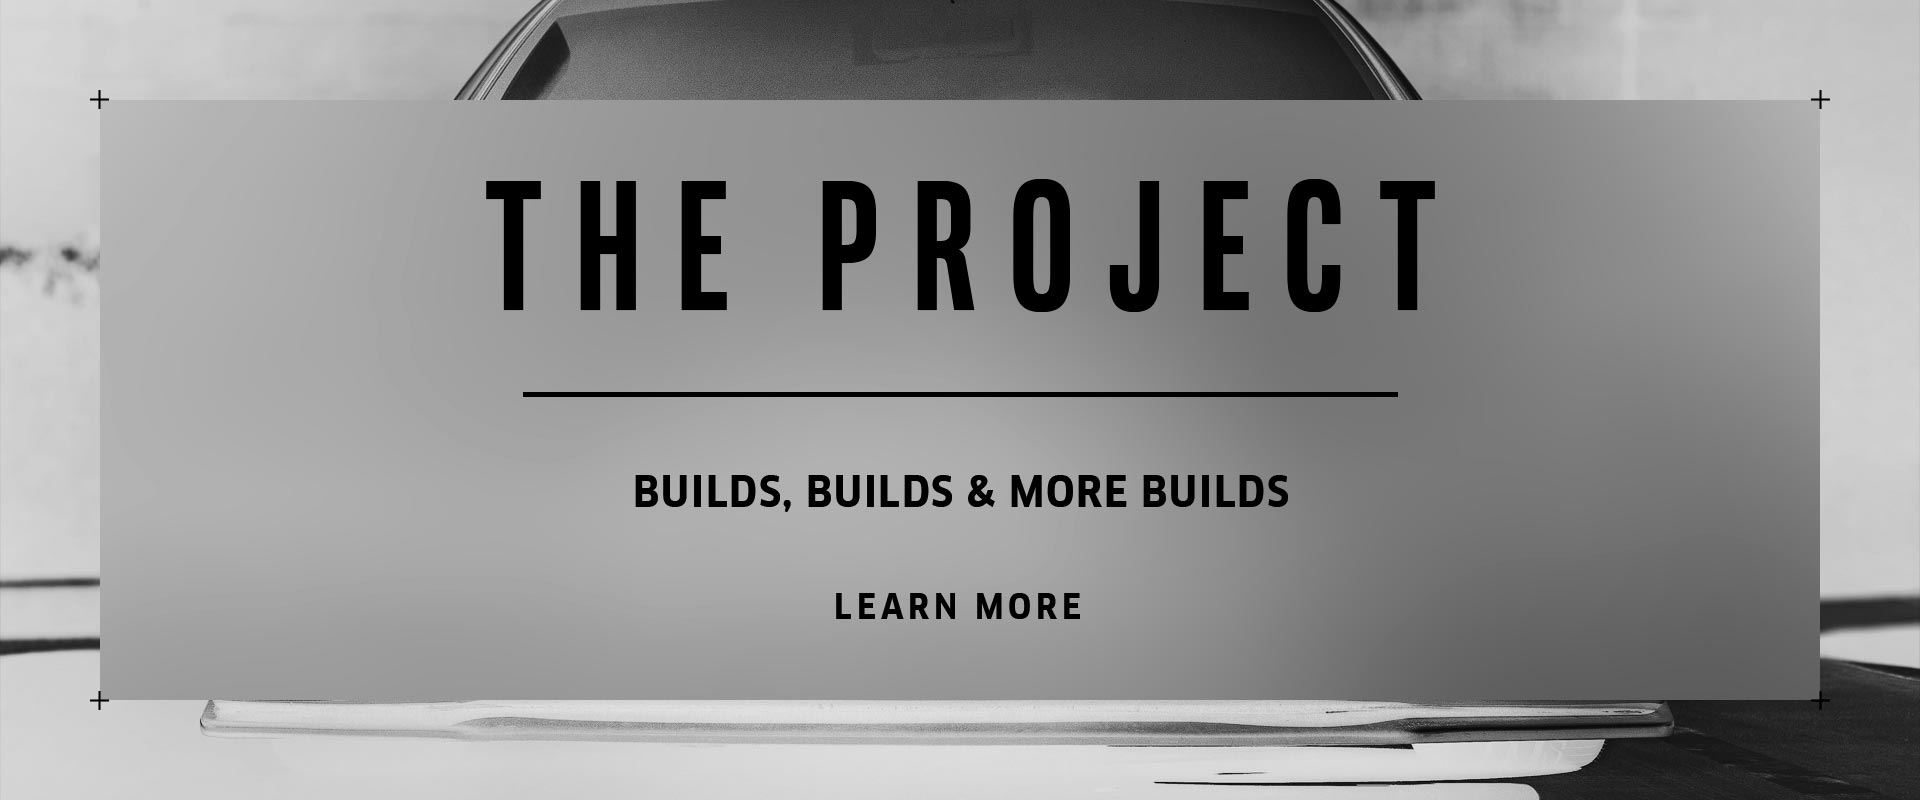 The Project. Builds, Builds and More Builds.